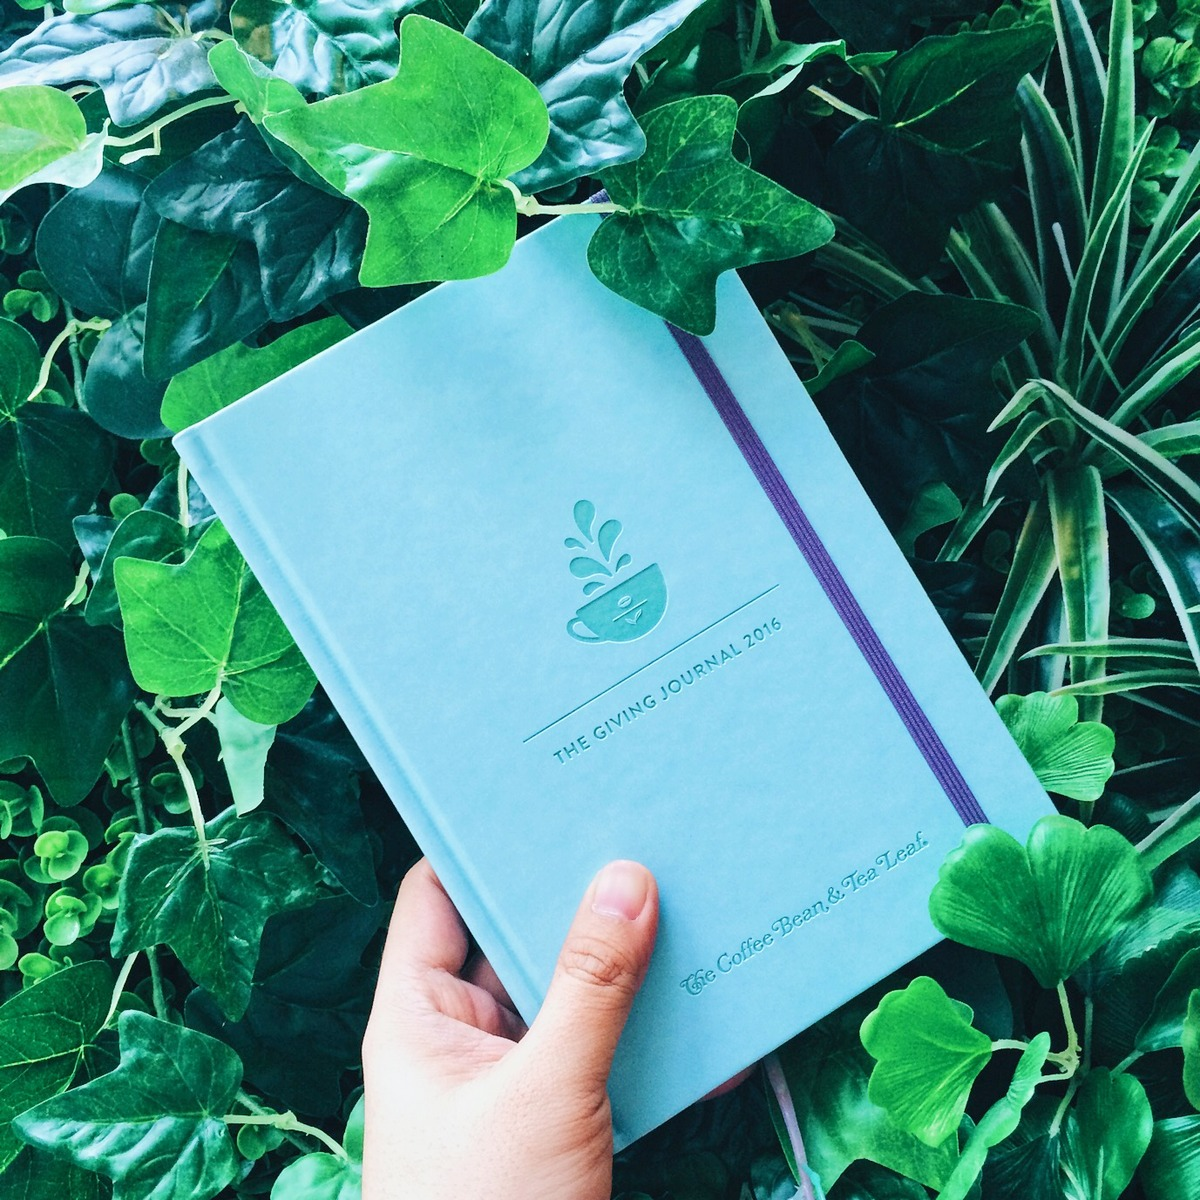 The Coffee Bean & Tea Leaf's Giving Journal 2016